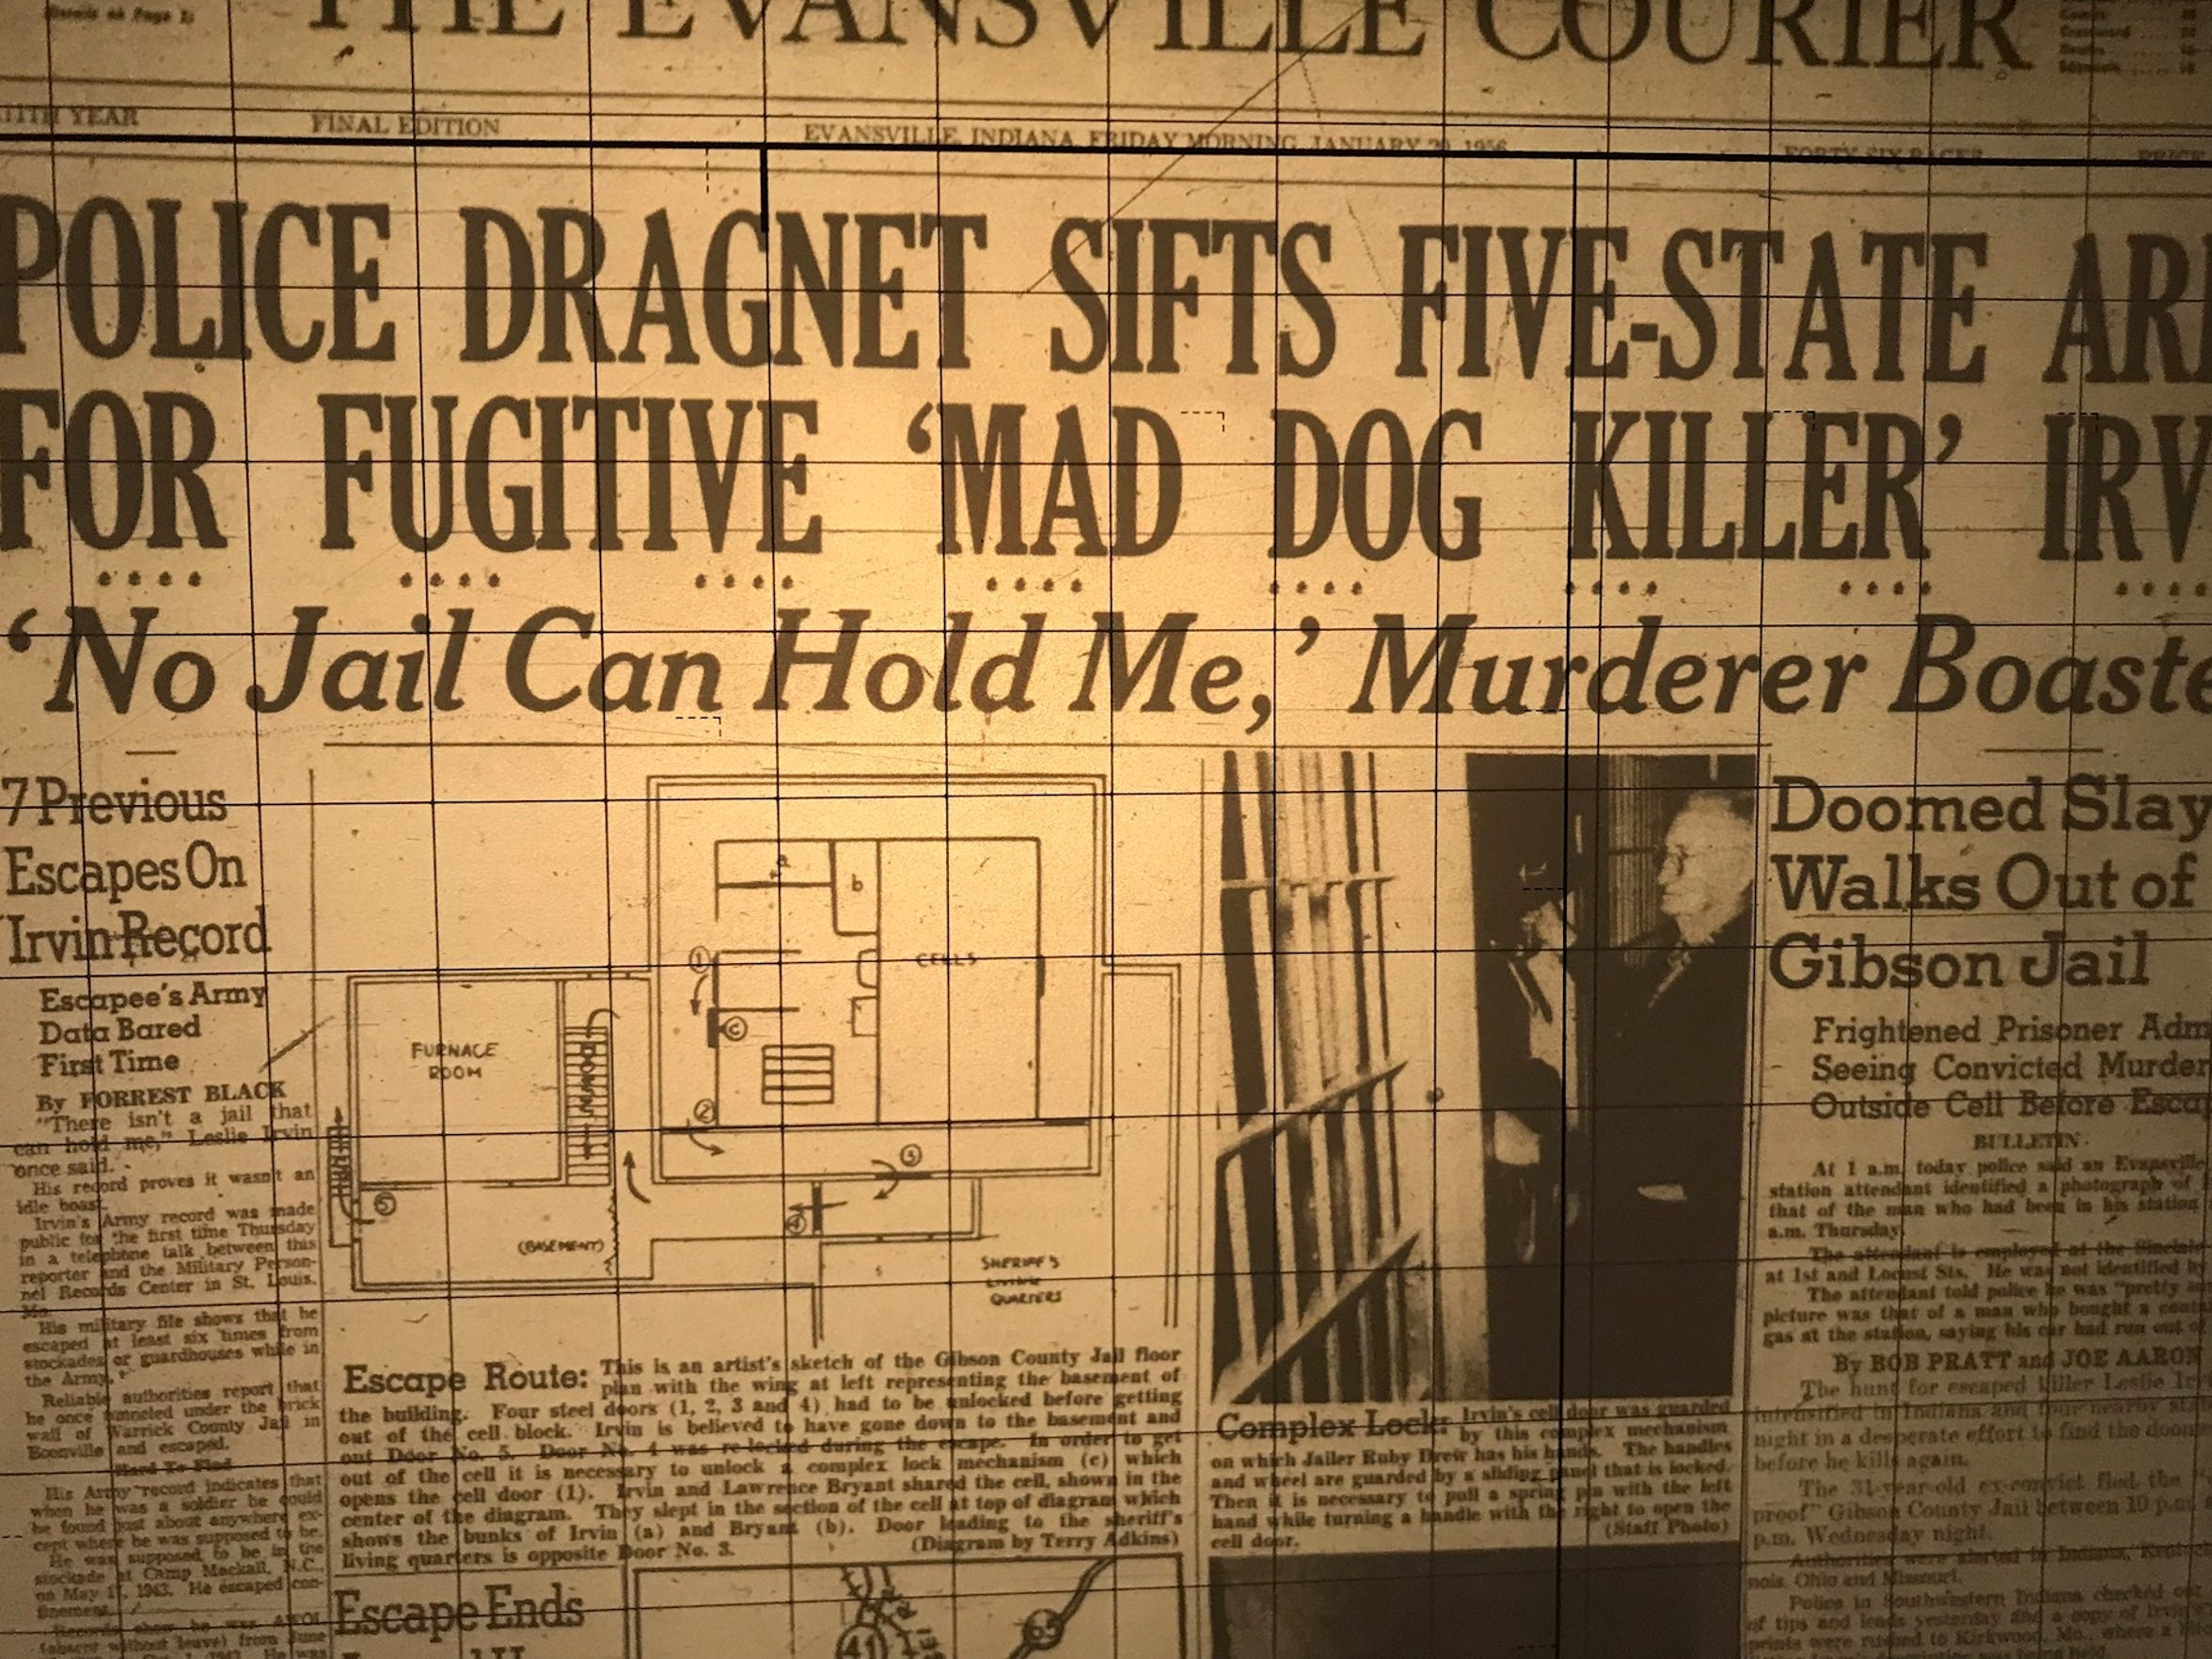 The front page of the Jan. 20, 1956 edition of the Evansville Courier. The escape of Leslie Irvin from the Gibson County Jail consumed the whole front page that day.